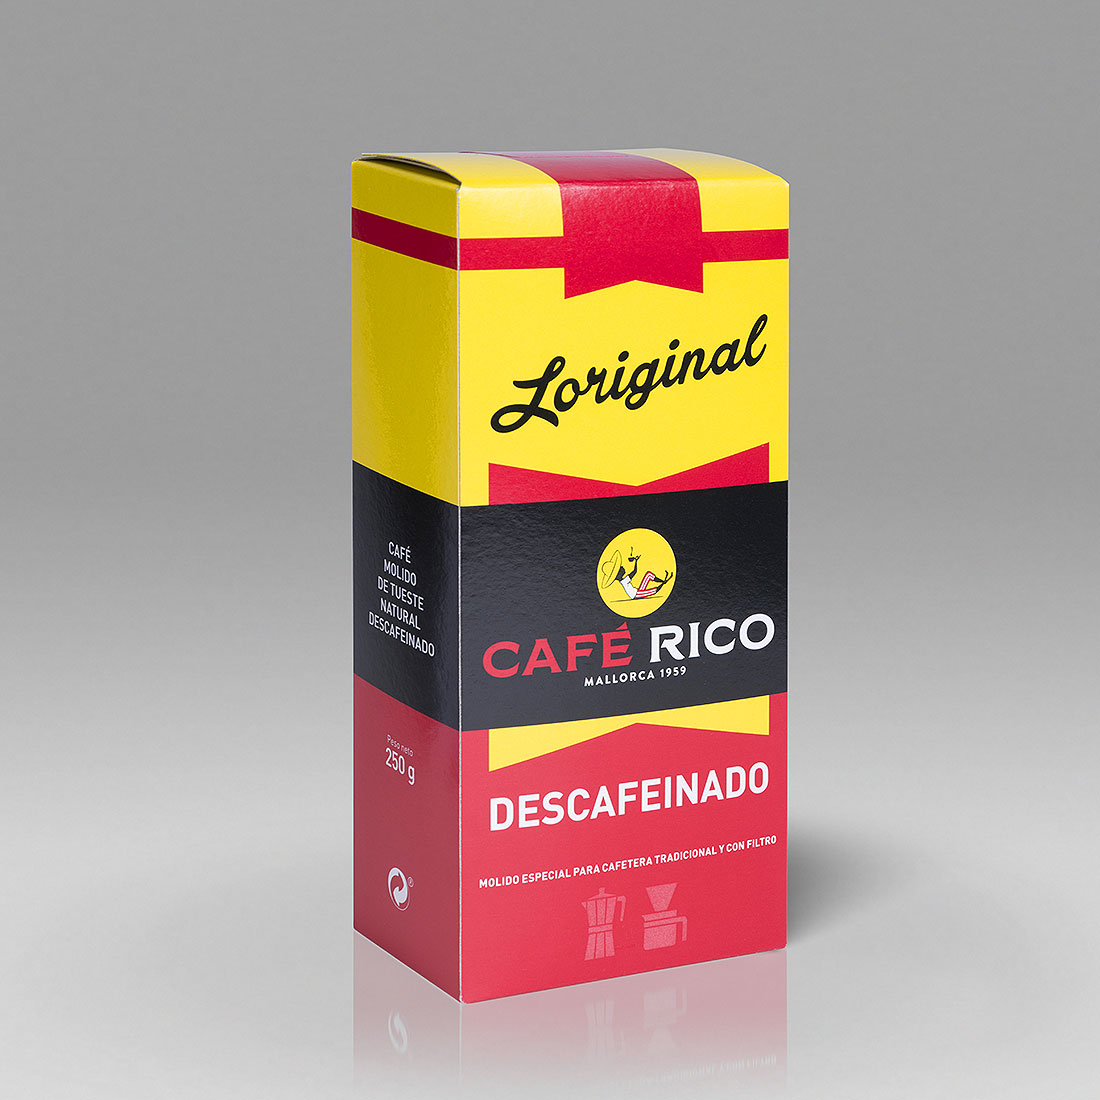 Cafe-Rico-Loriginal-Decaffeinated